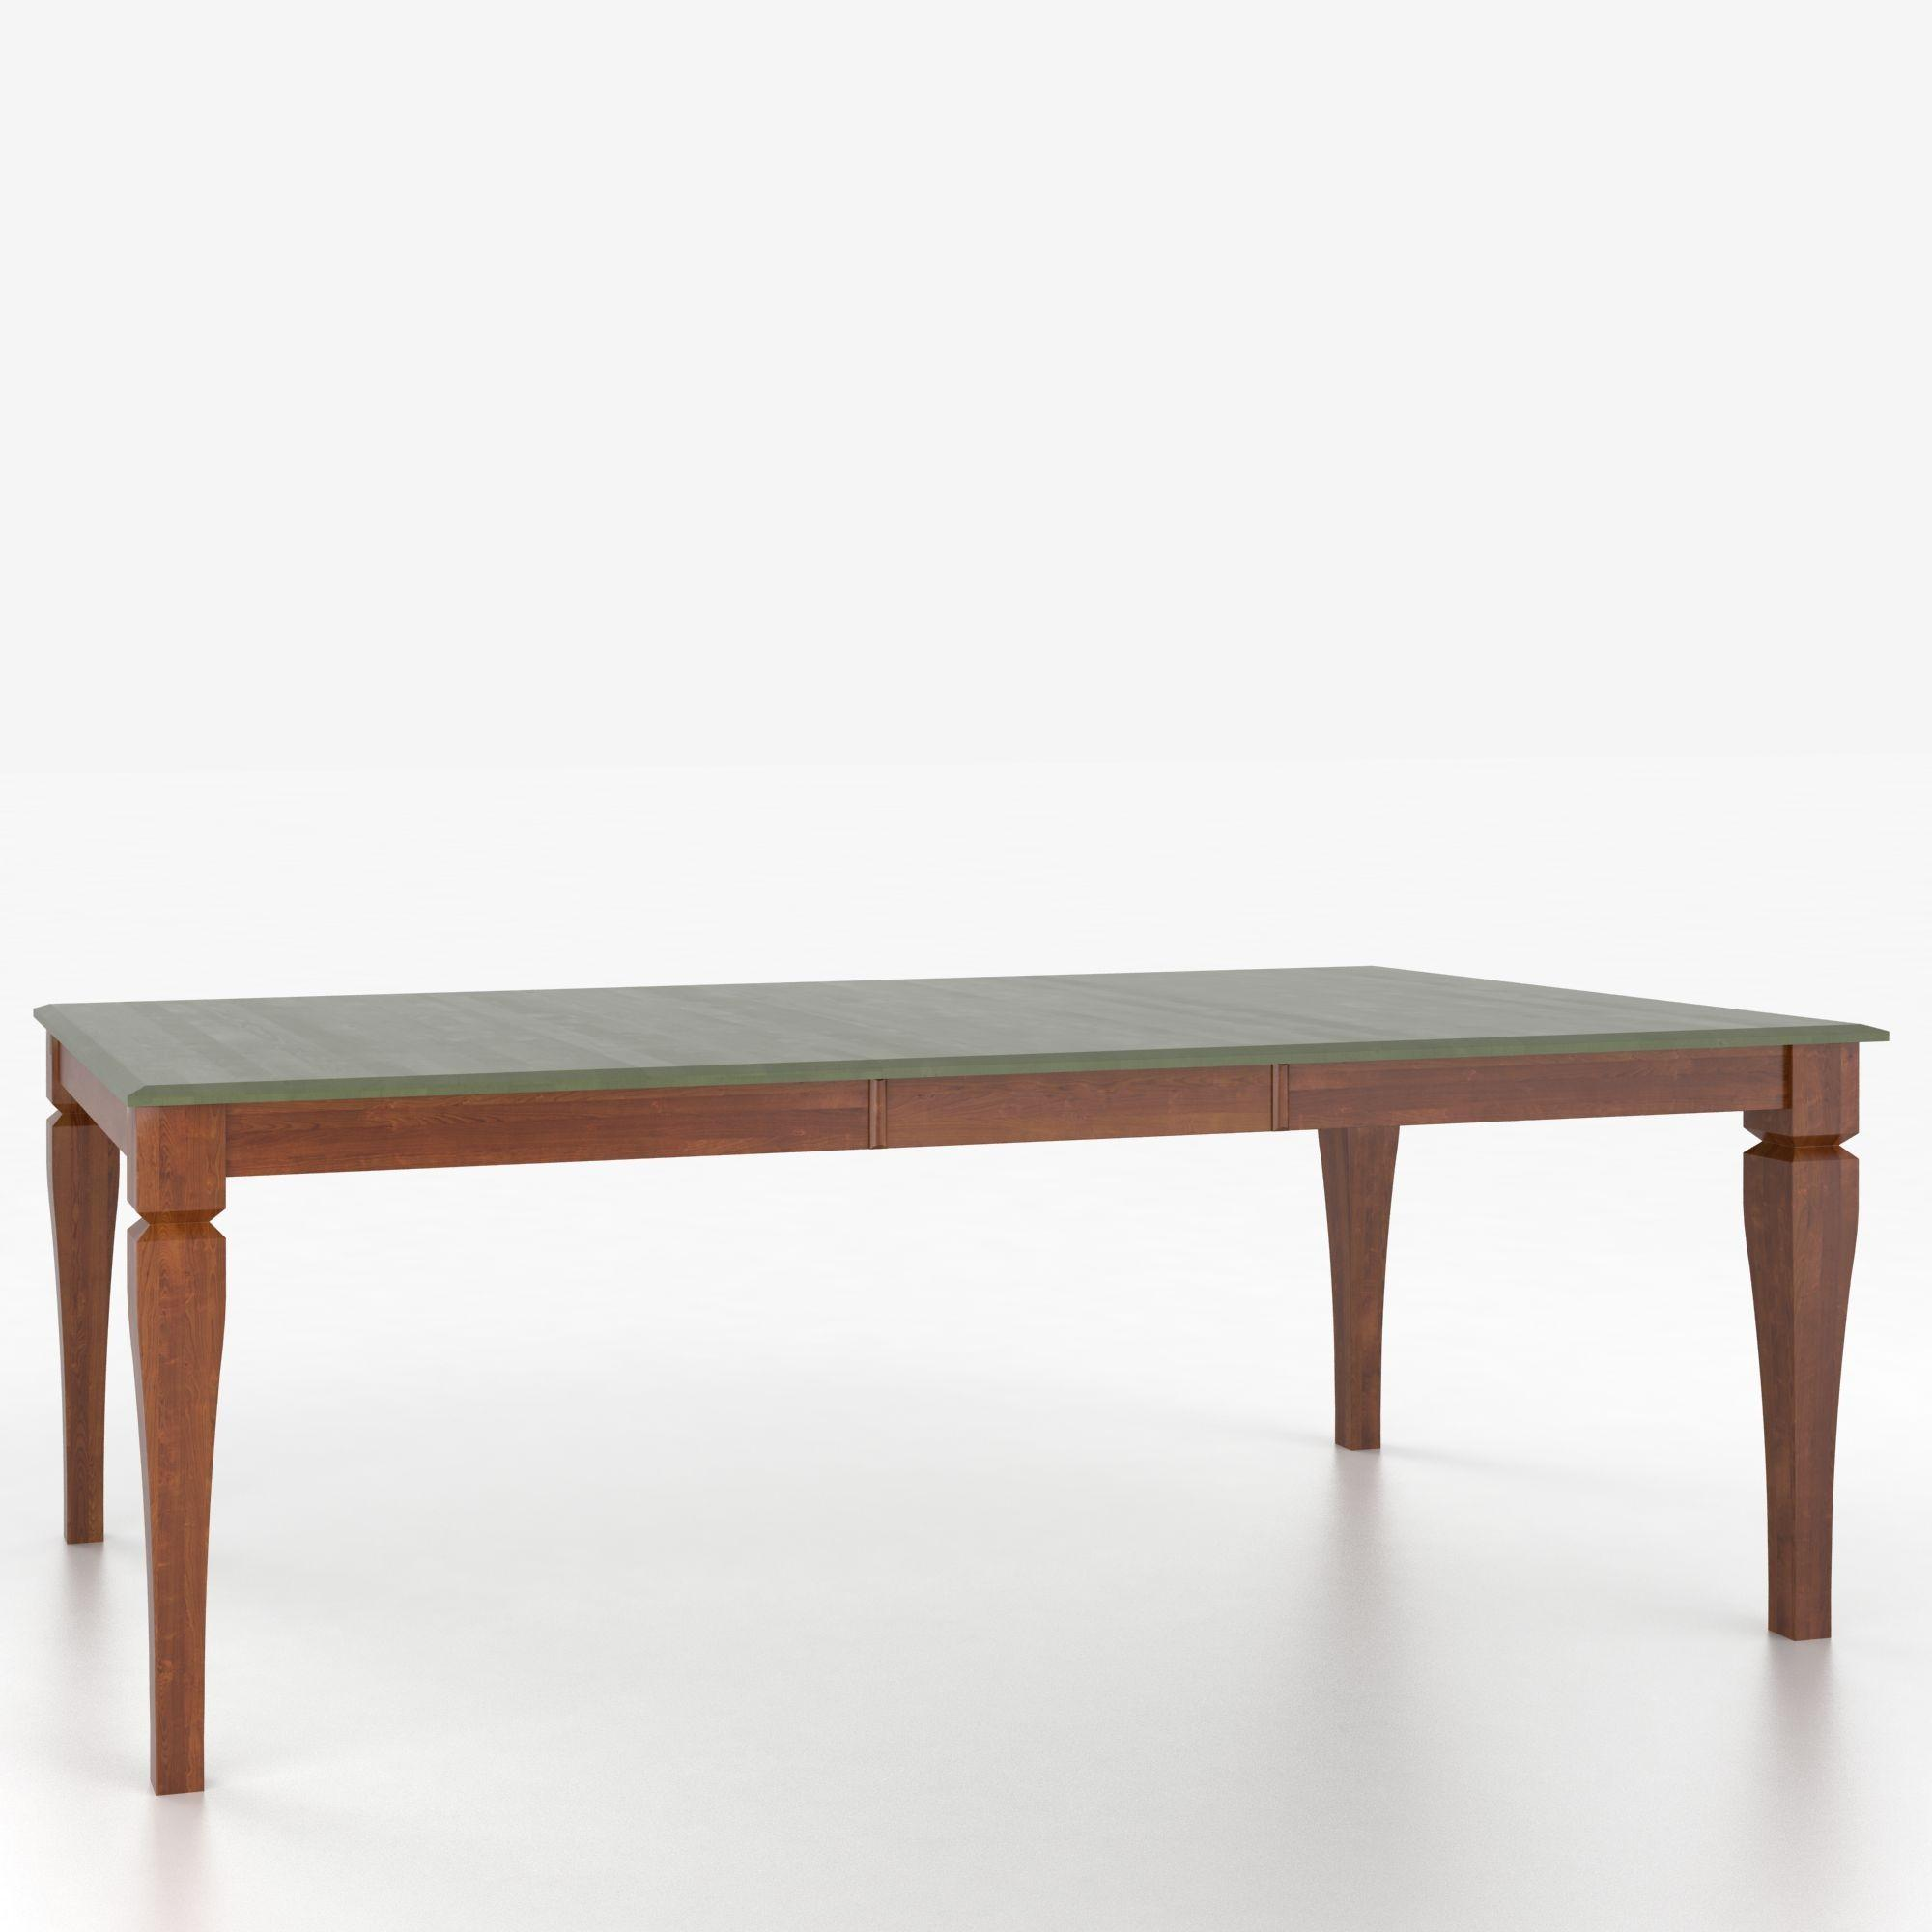 Custom Dining Tables Customizable Rectangular Table with Legs by Canadel at Jordan's Home Furnishings